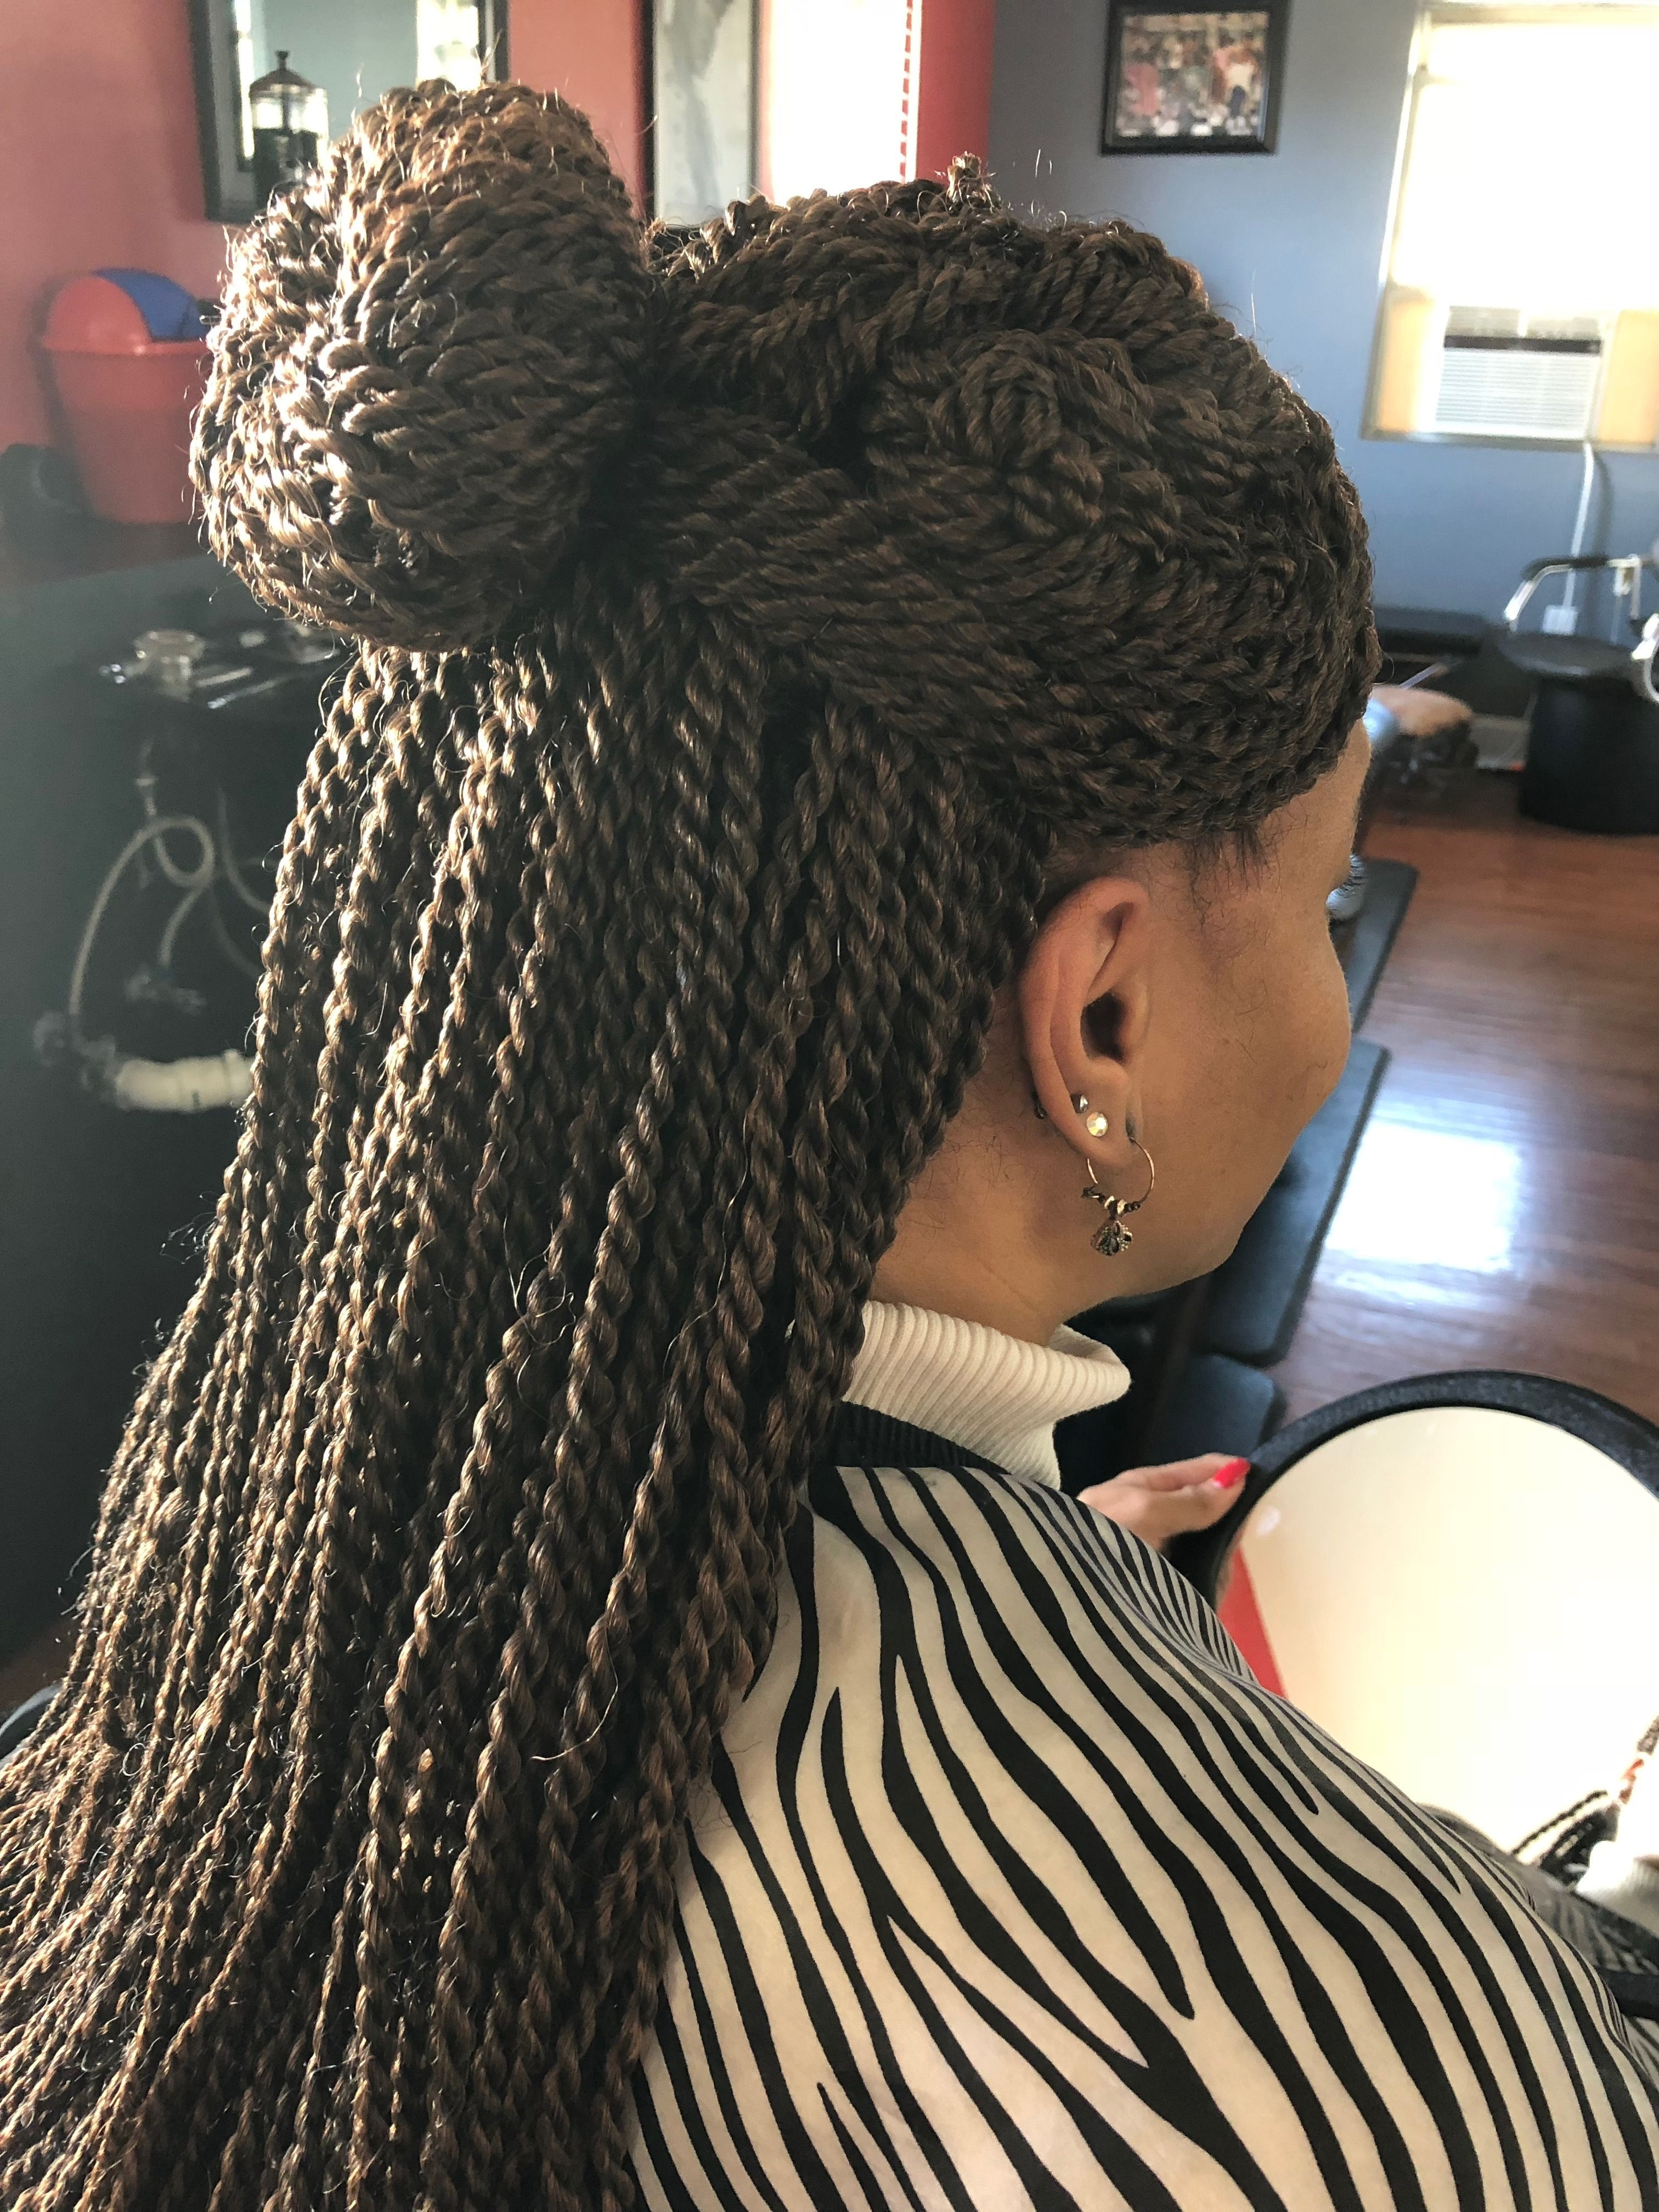 Pinterest Pertaining To Recent Crazy Cornrows Hairstyles (View 3 of 15)